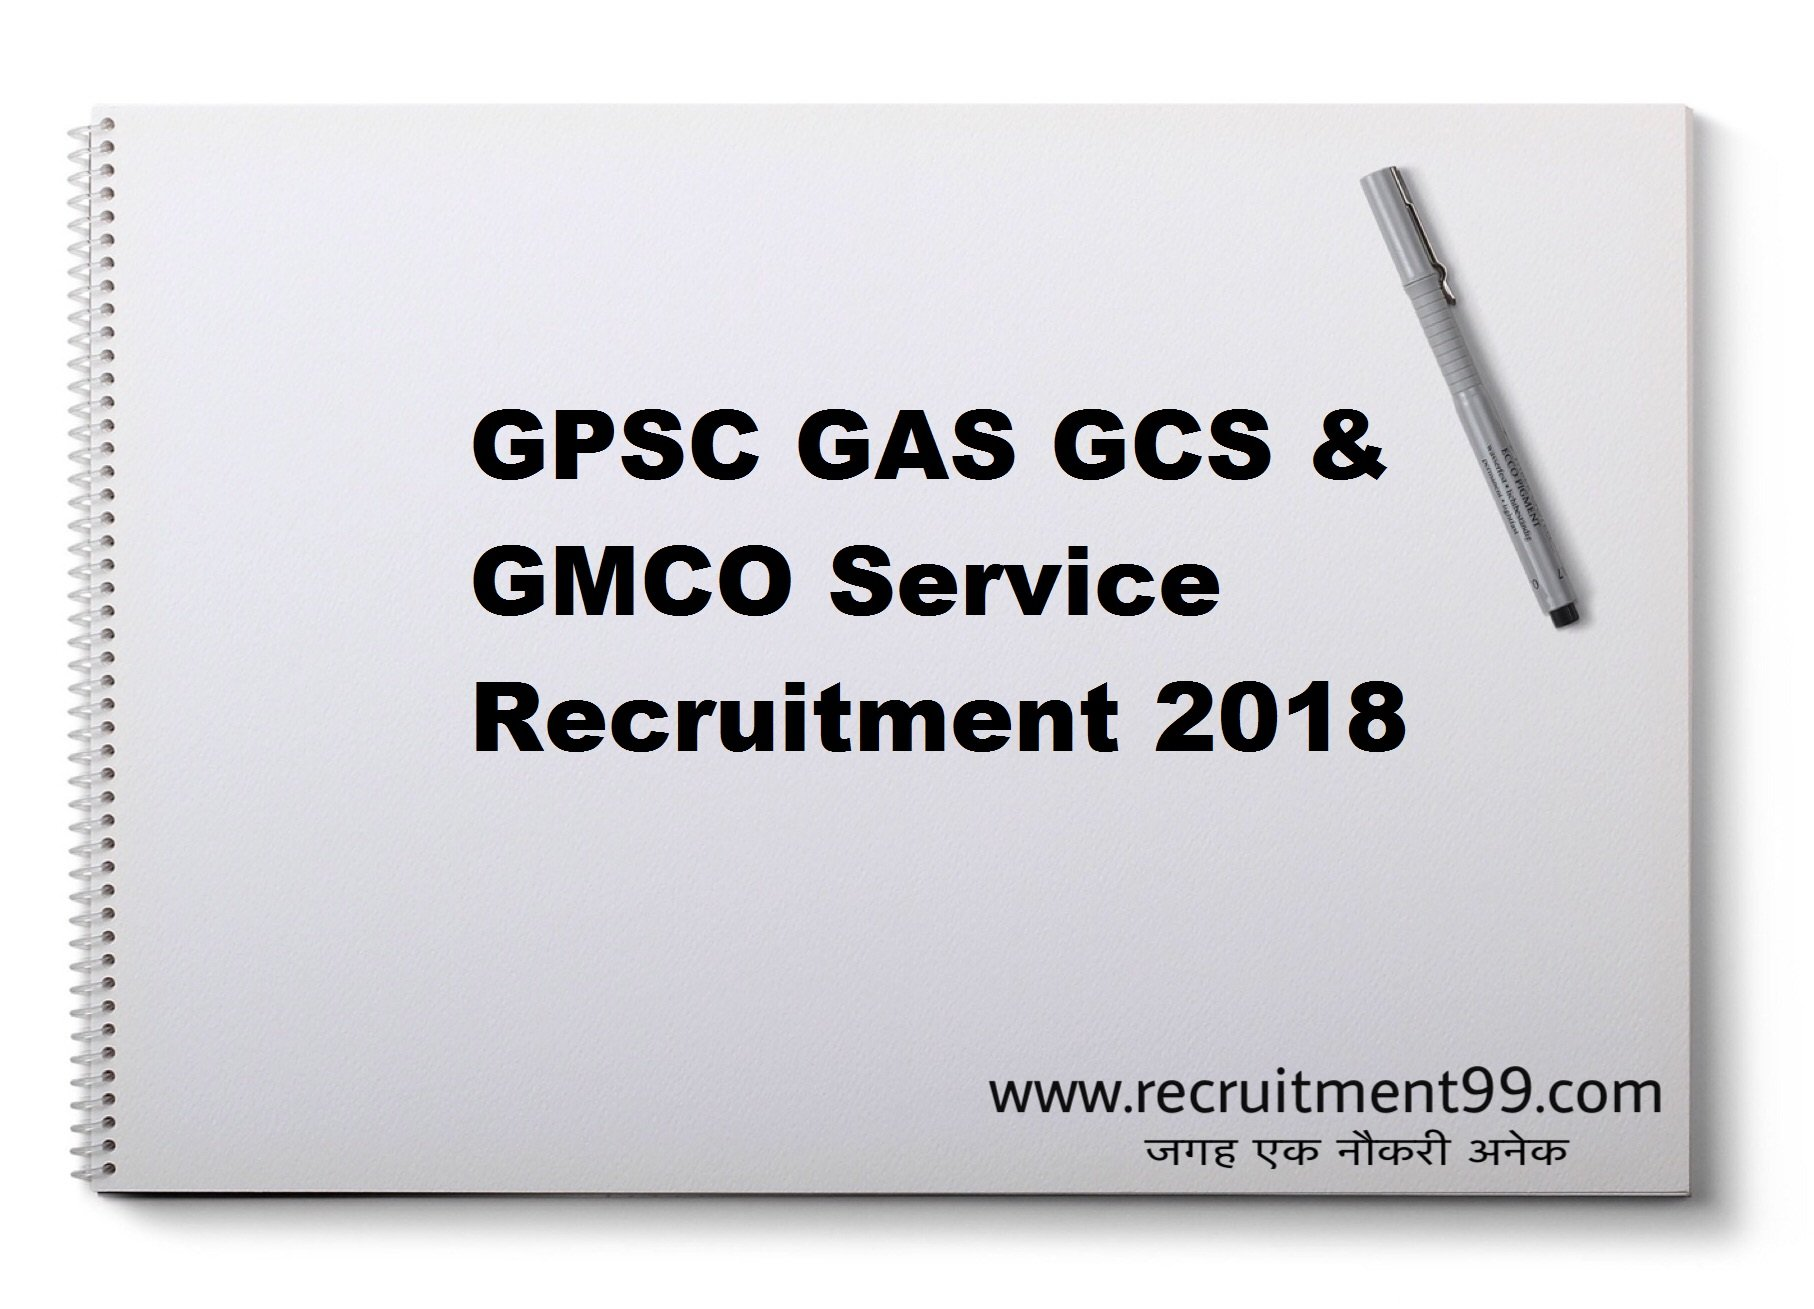 GPSC GAS GCS & GMCO Service Recruitment Admit Card Result 2018